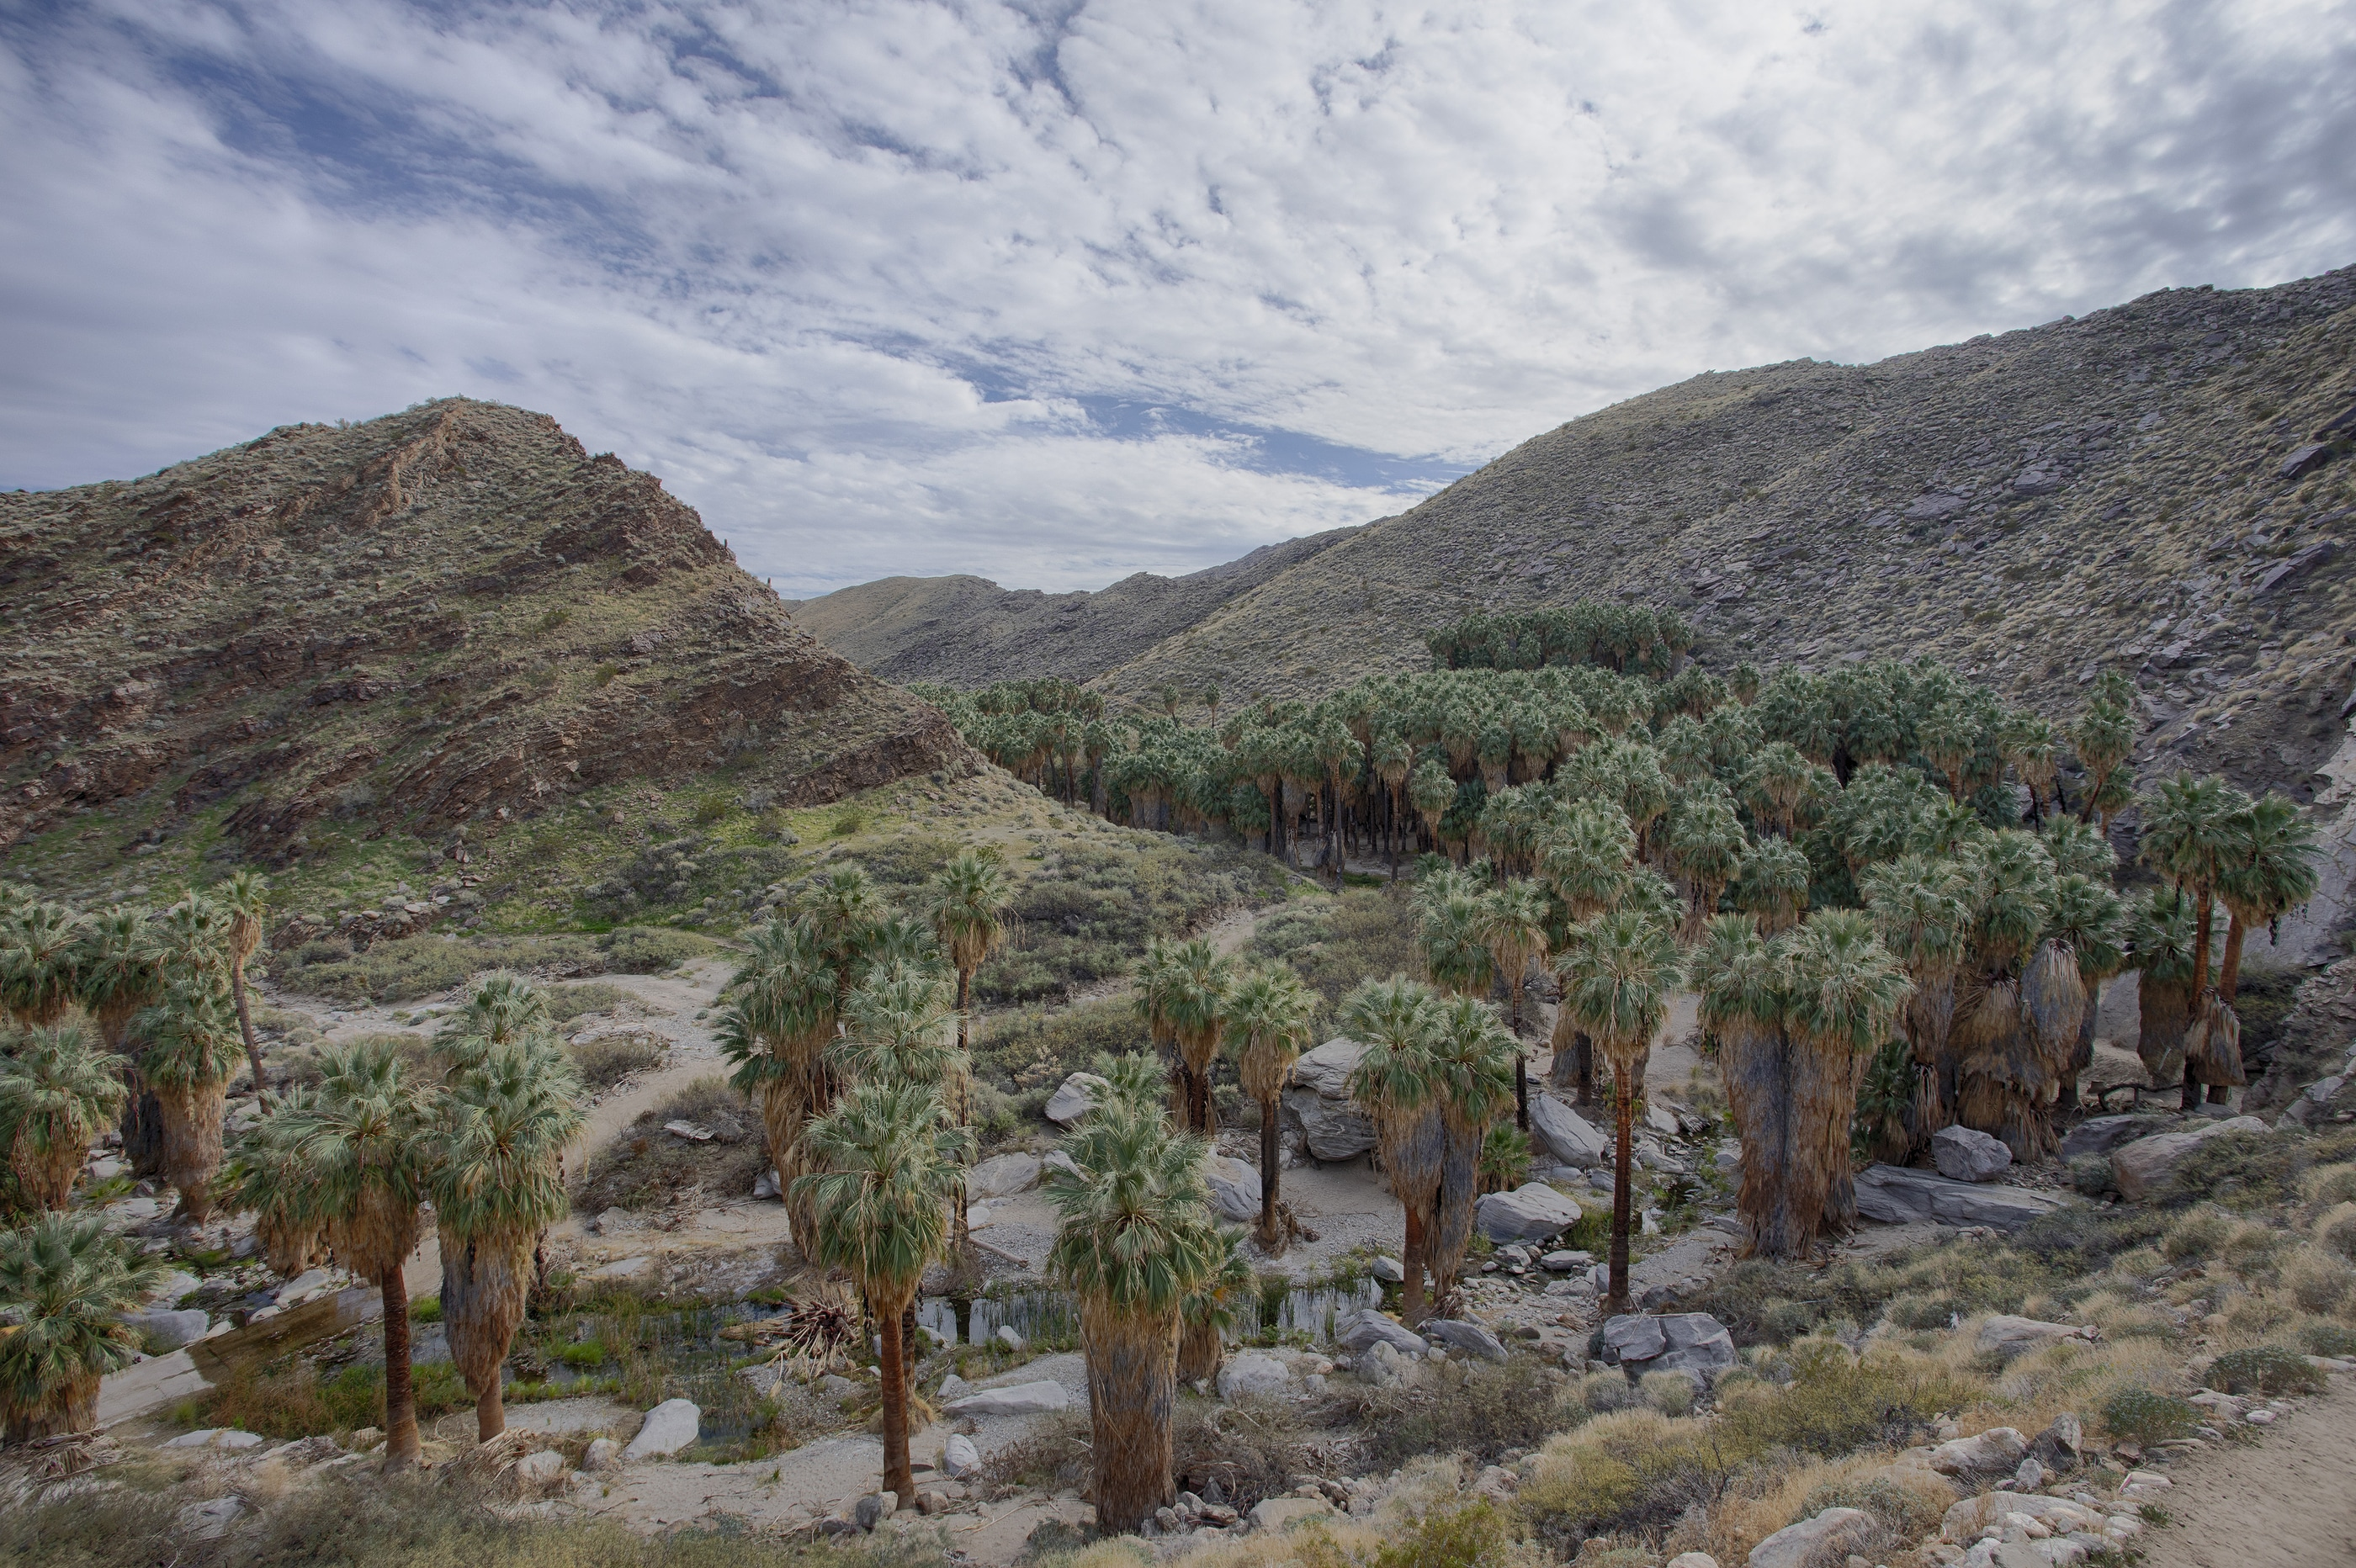 Indian Canyons is a great place to explore nature in Palm Springs.